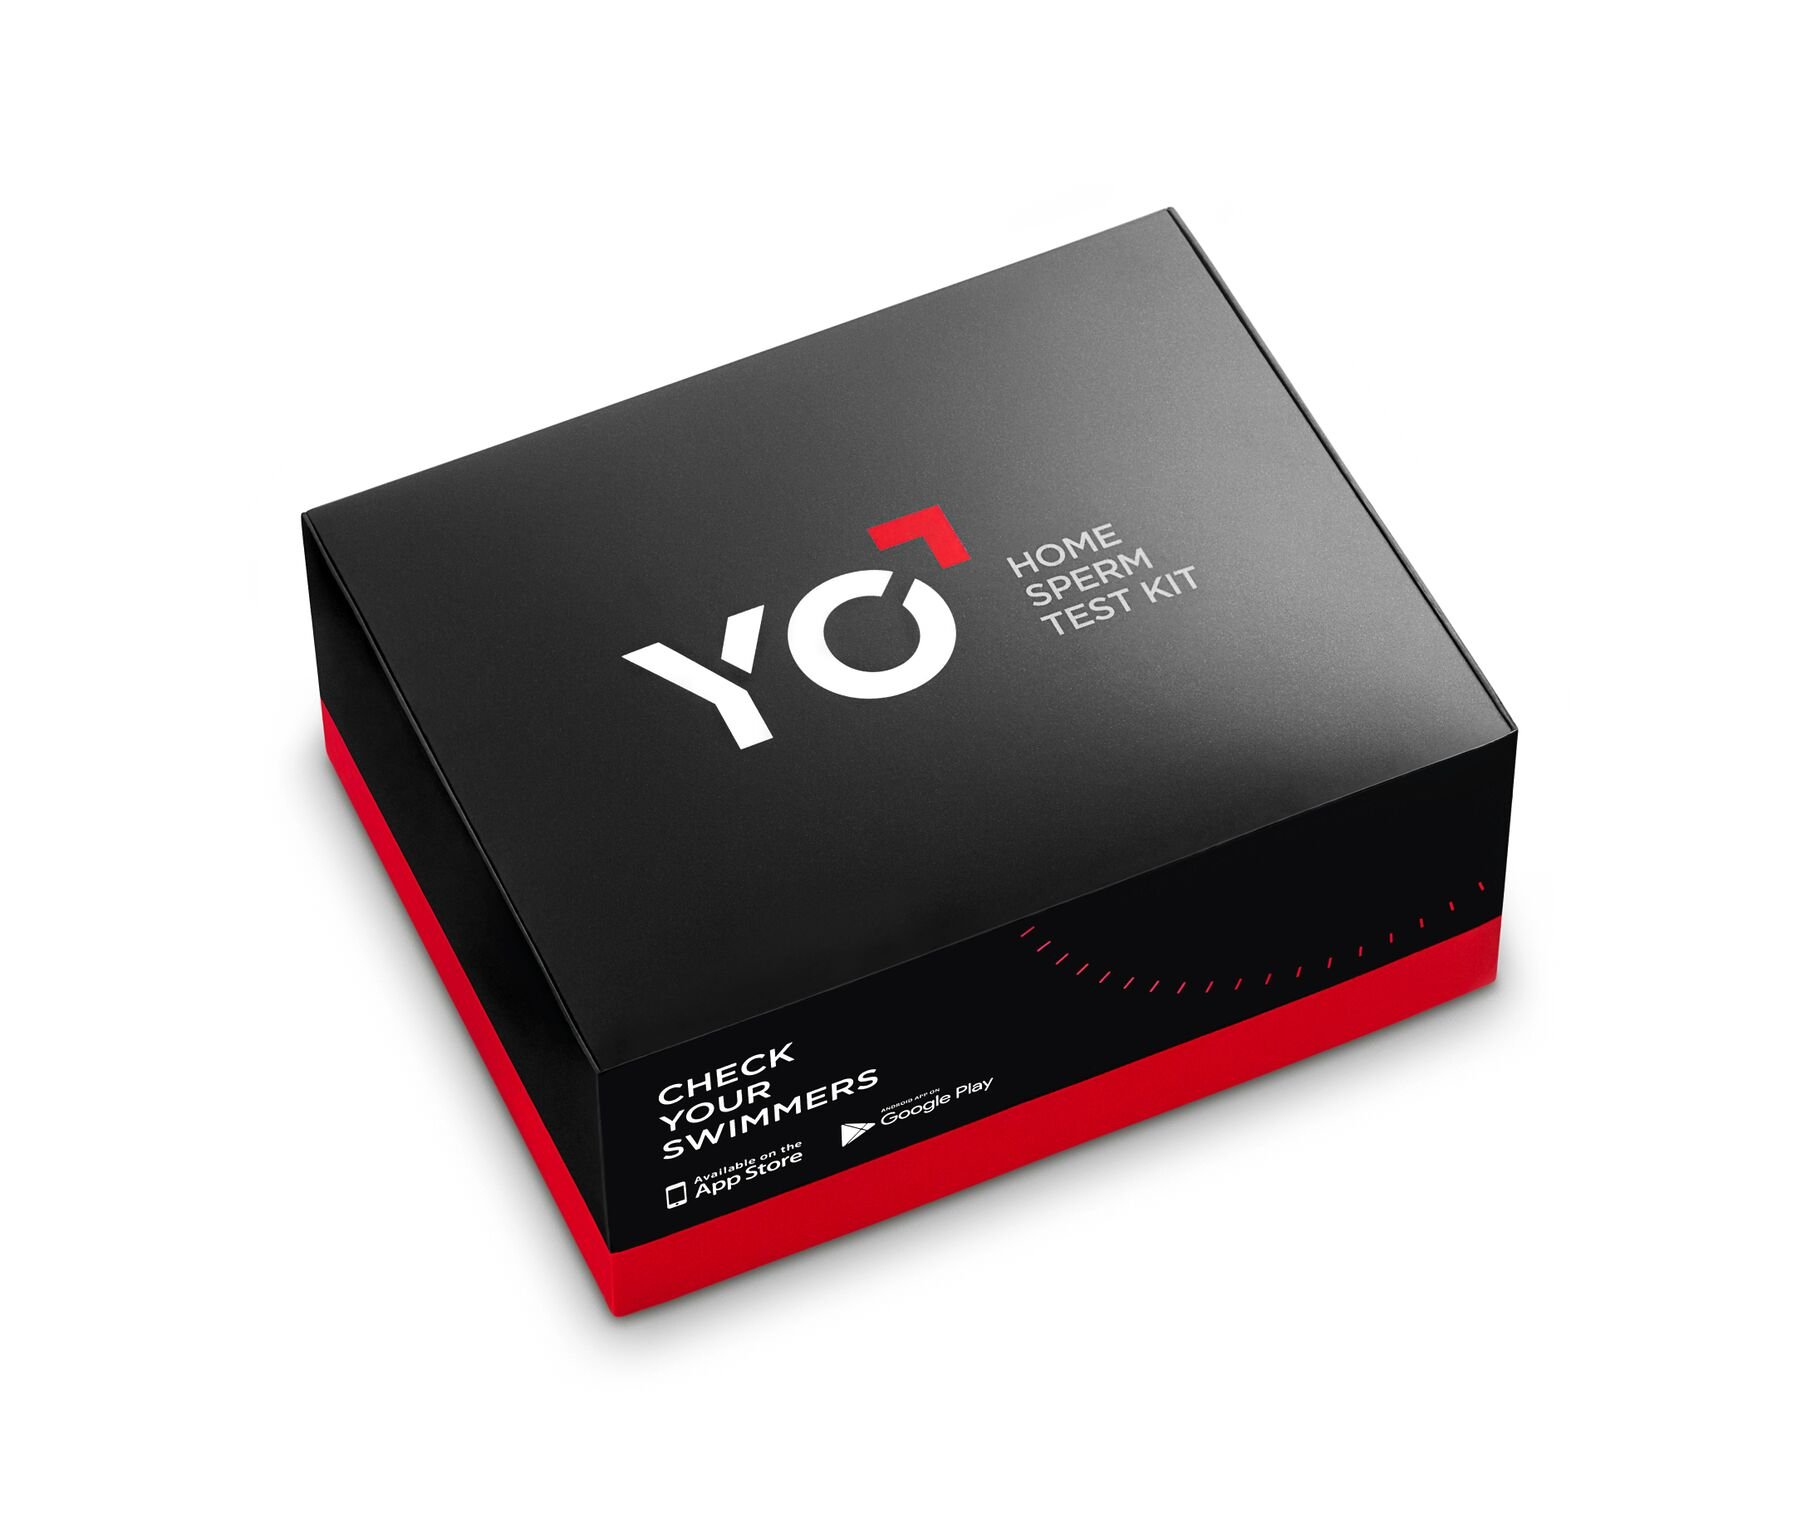 YO at Home Sperm Test for Samsung Galaxy | Includes 2 Tests | Men's Motile Sperm Fertility Test | Check Moving Sperm and Record Videos | Samsung Galaxy S8 by YO (Image #3)